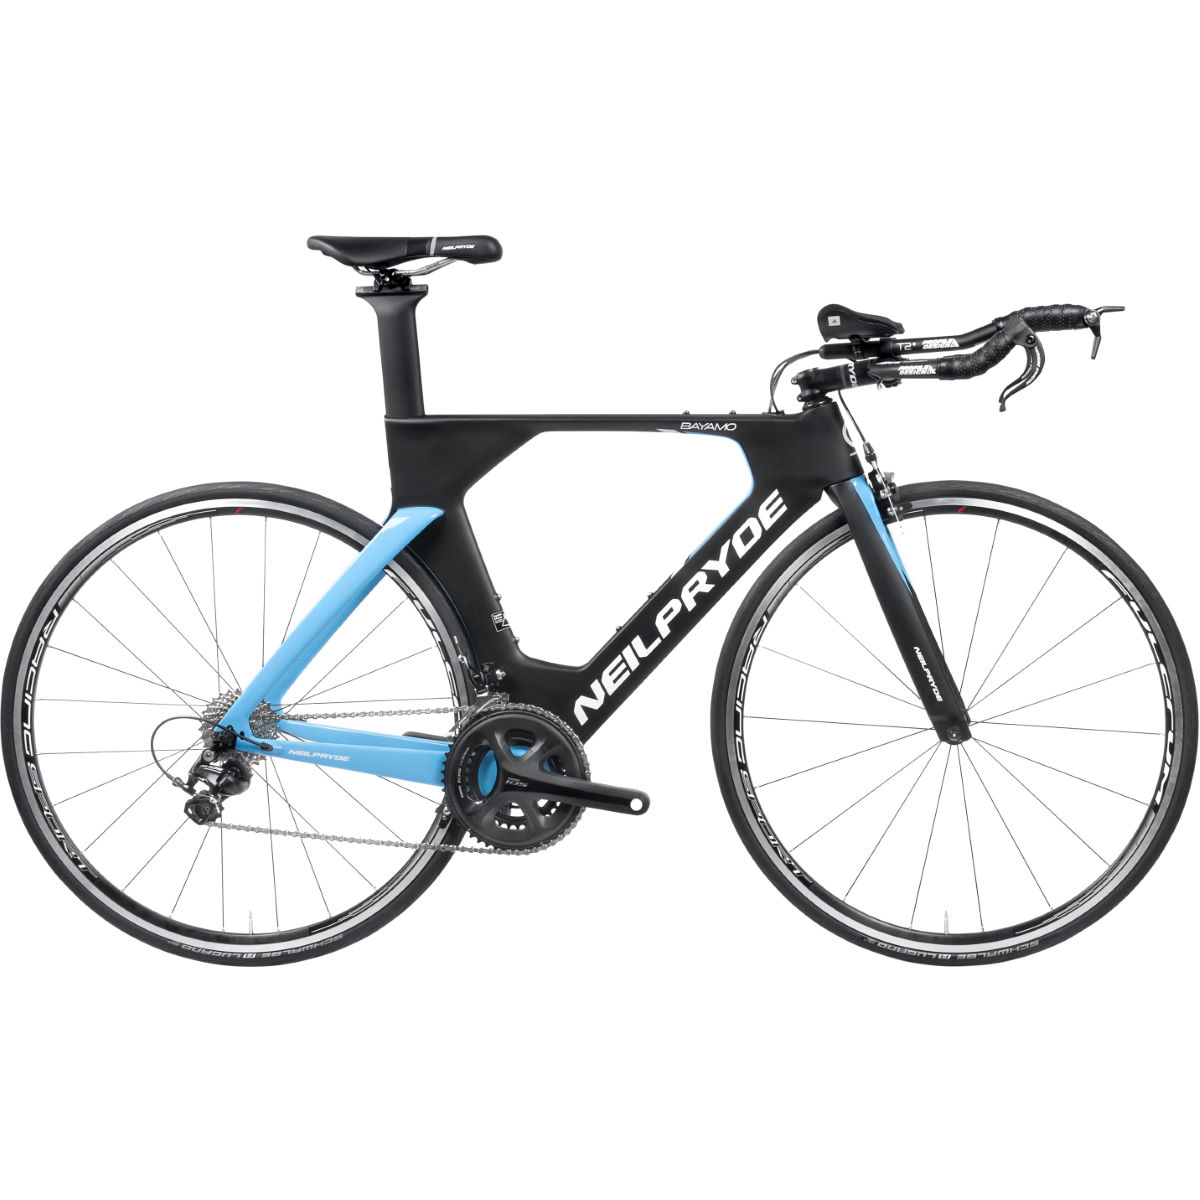 Vélo de triathlon NeilPryde Bayamo (105, 2017) - Extra Small Stock Bi Black/Blue/White Vélos de route